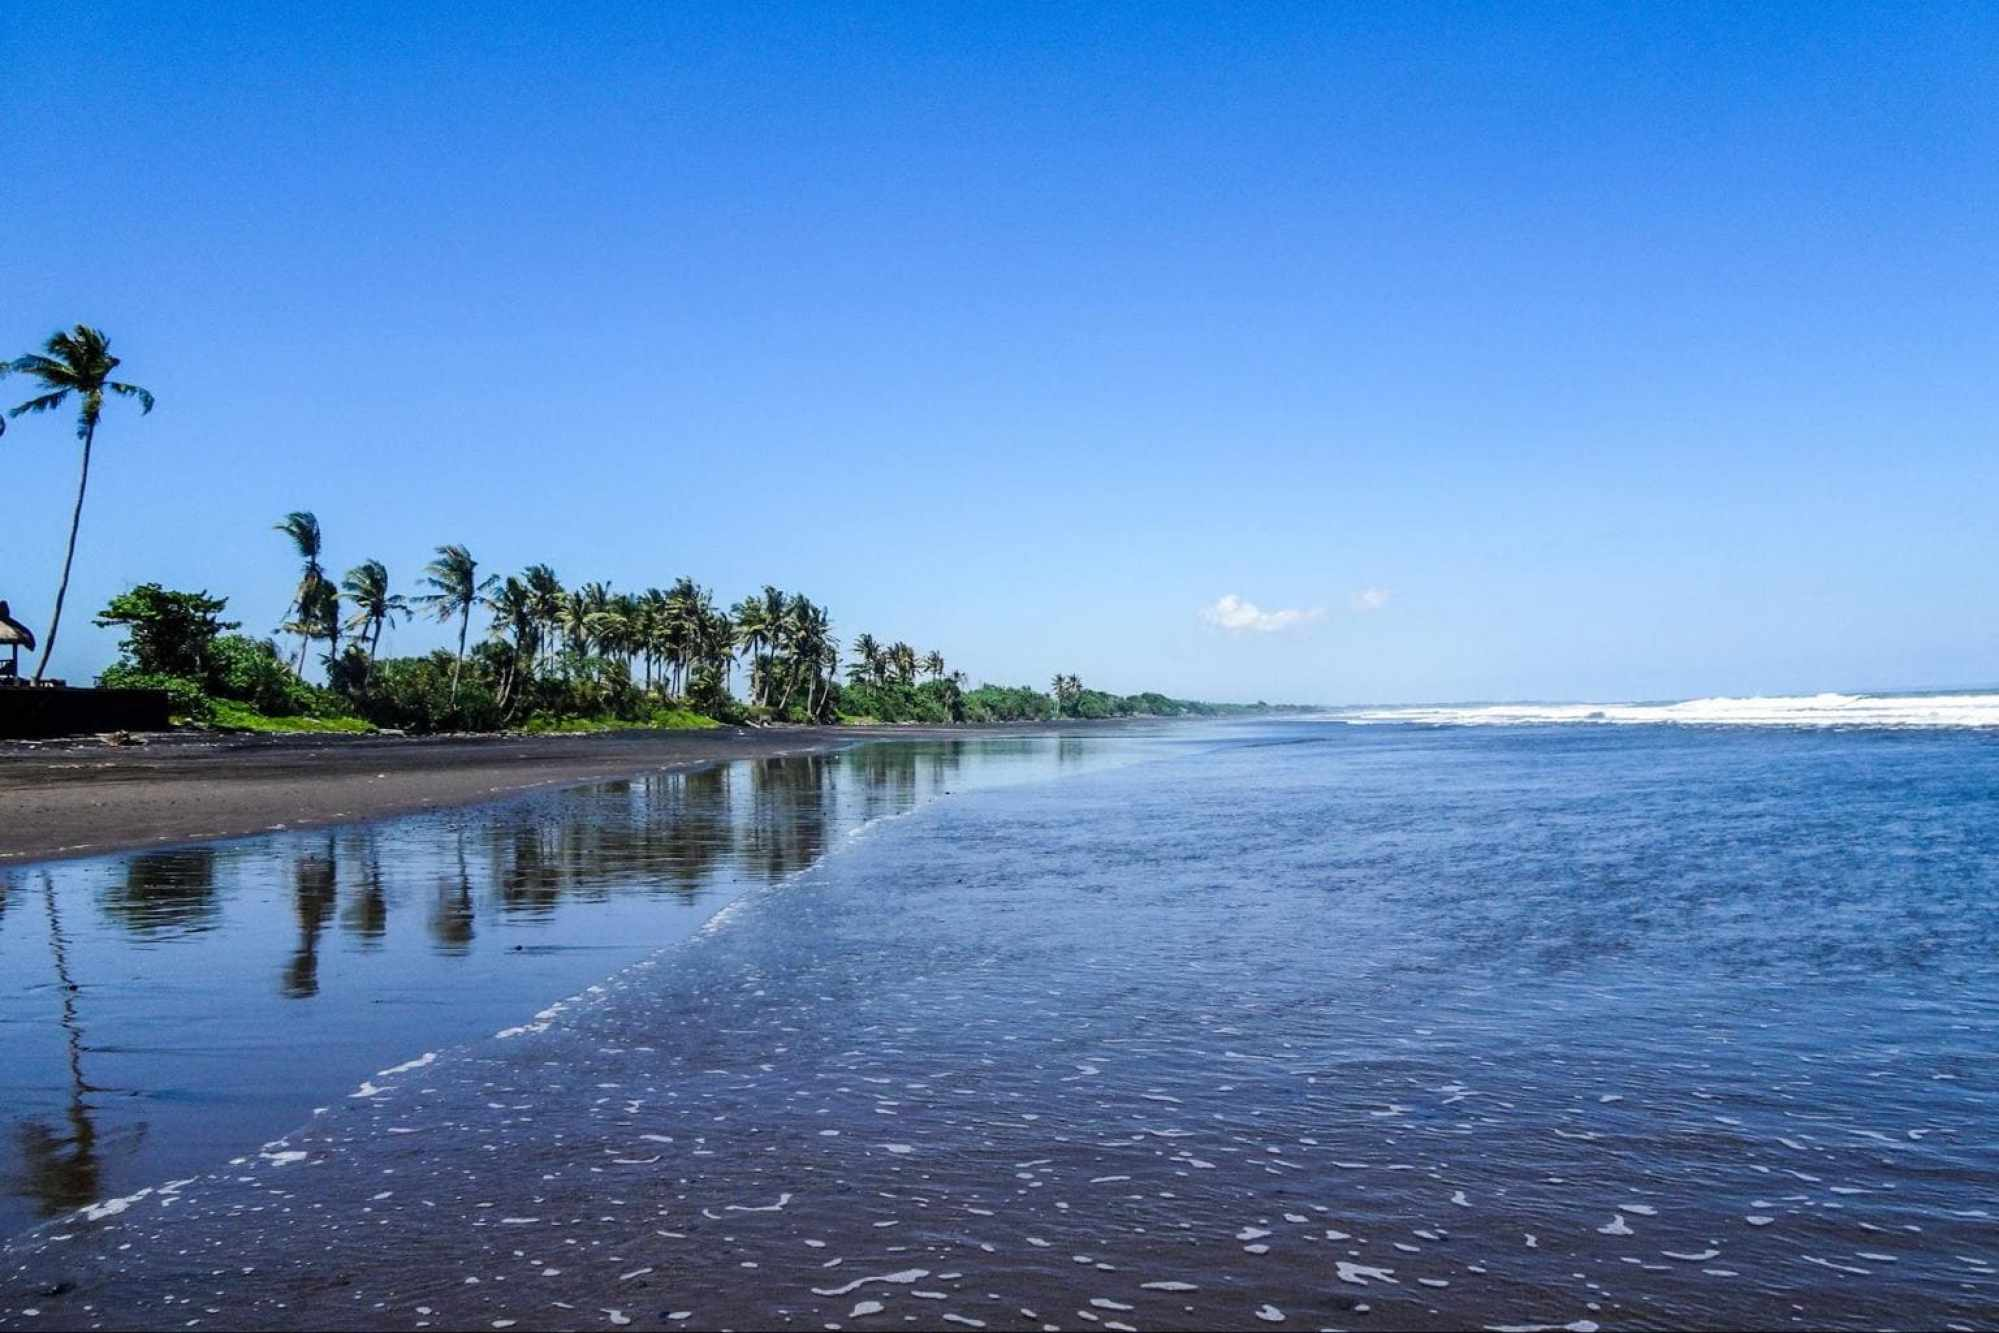 Pasut Beach, a black sand beach in Bali